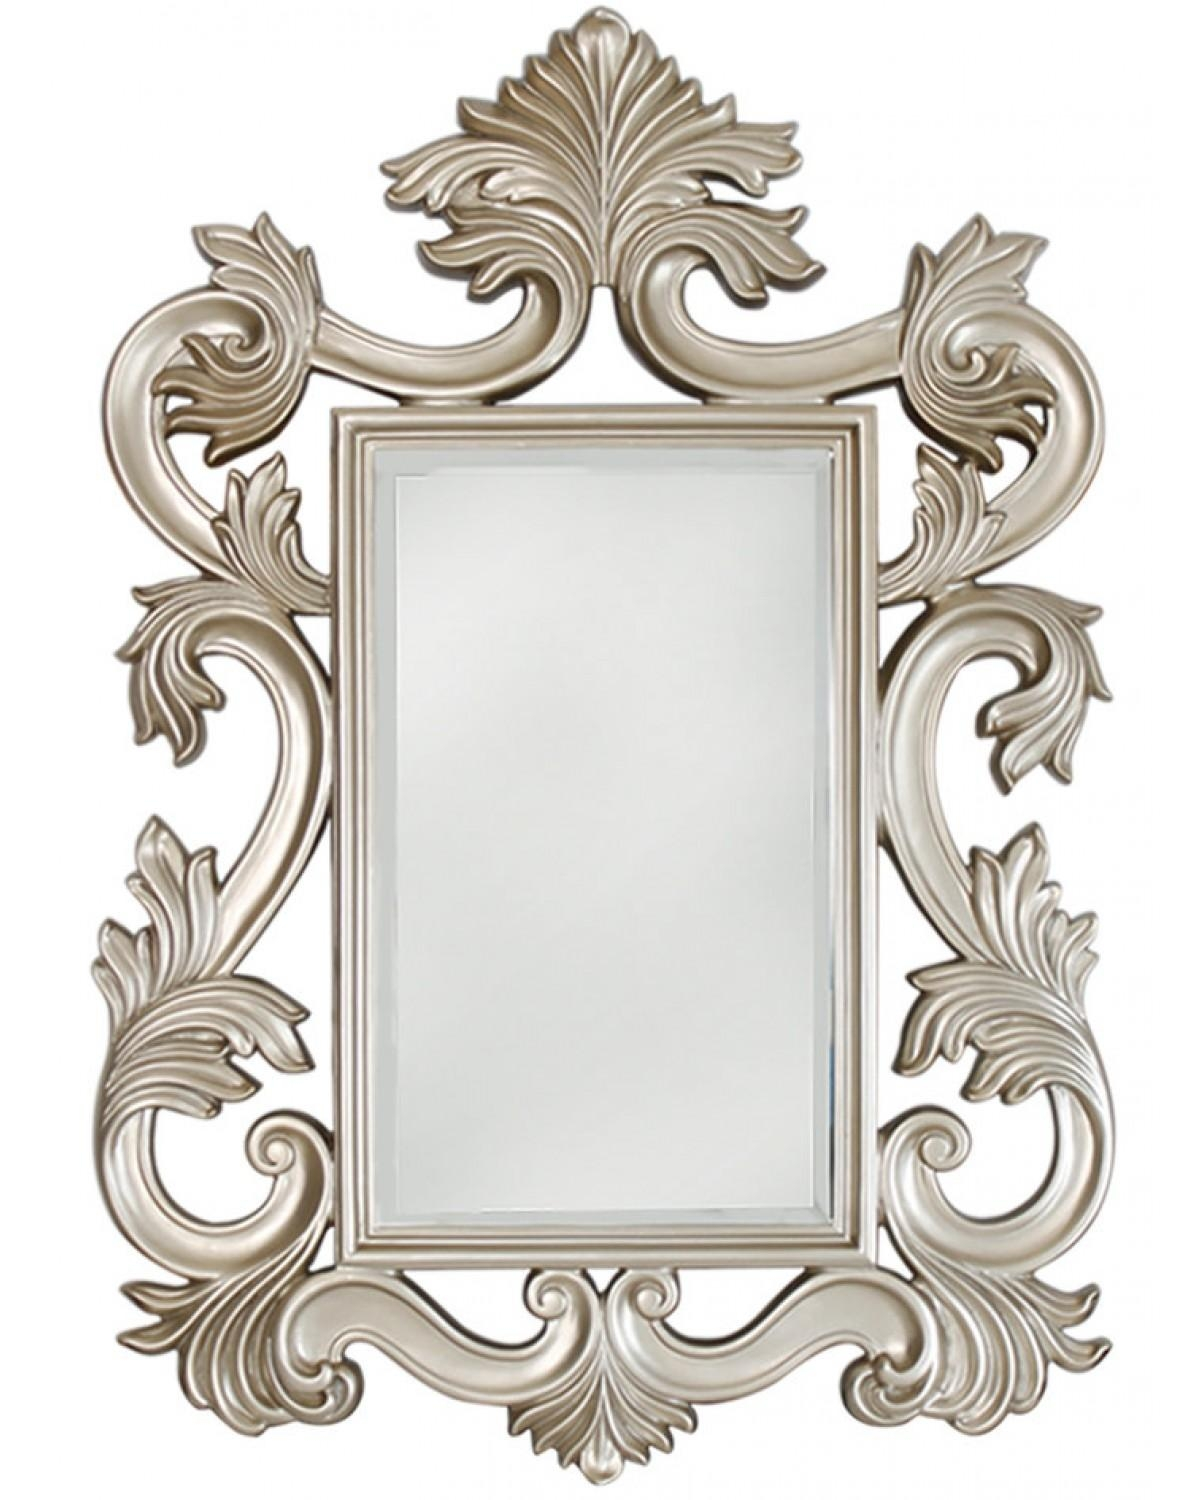 Gold Extra Large Paris Baroque Mirror For Large Baroque Mirror (View 3 of 20)